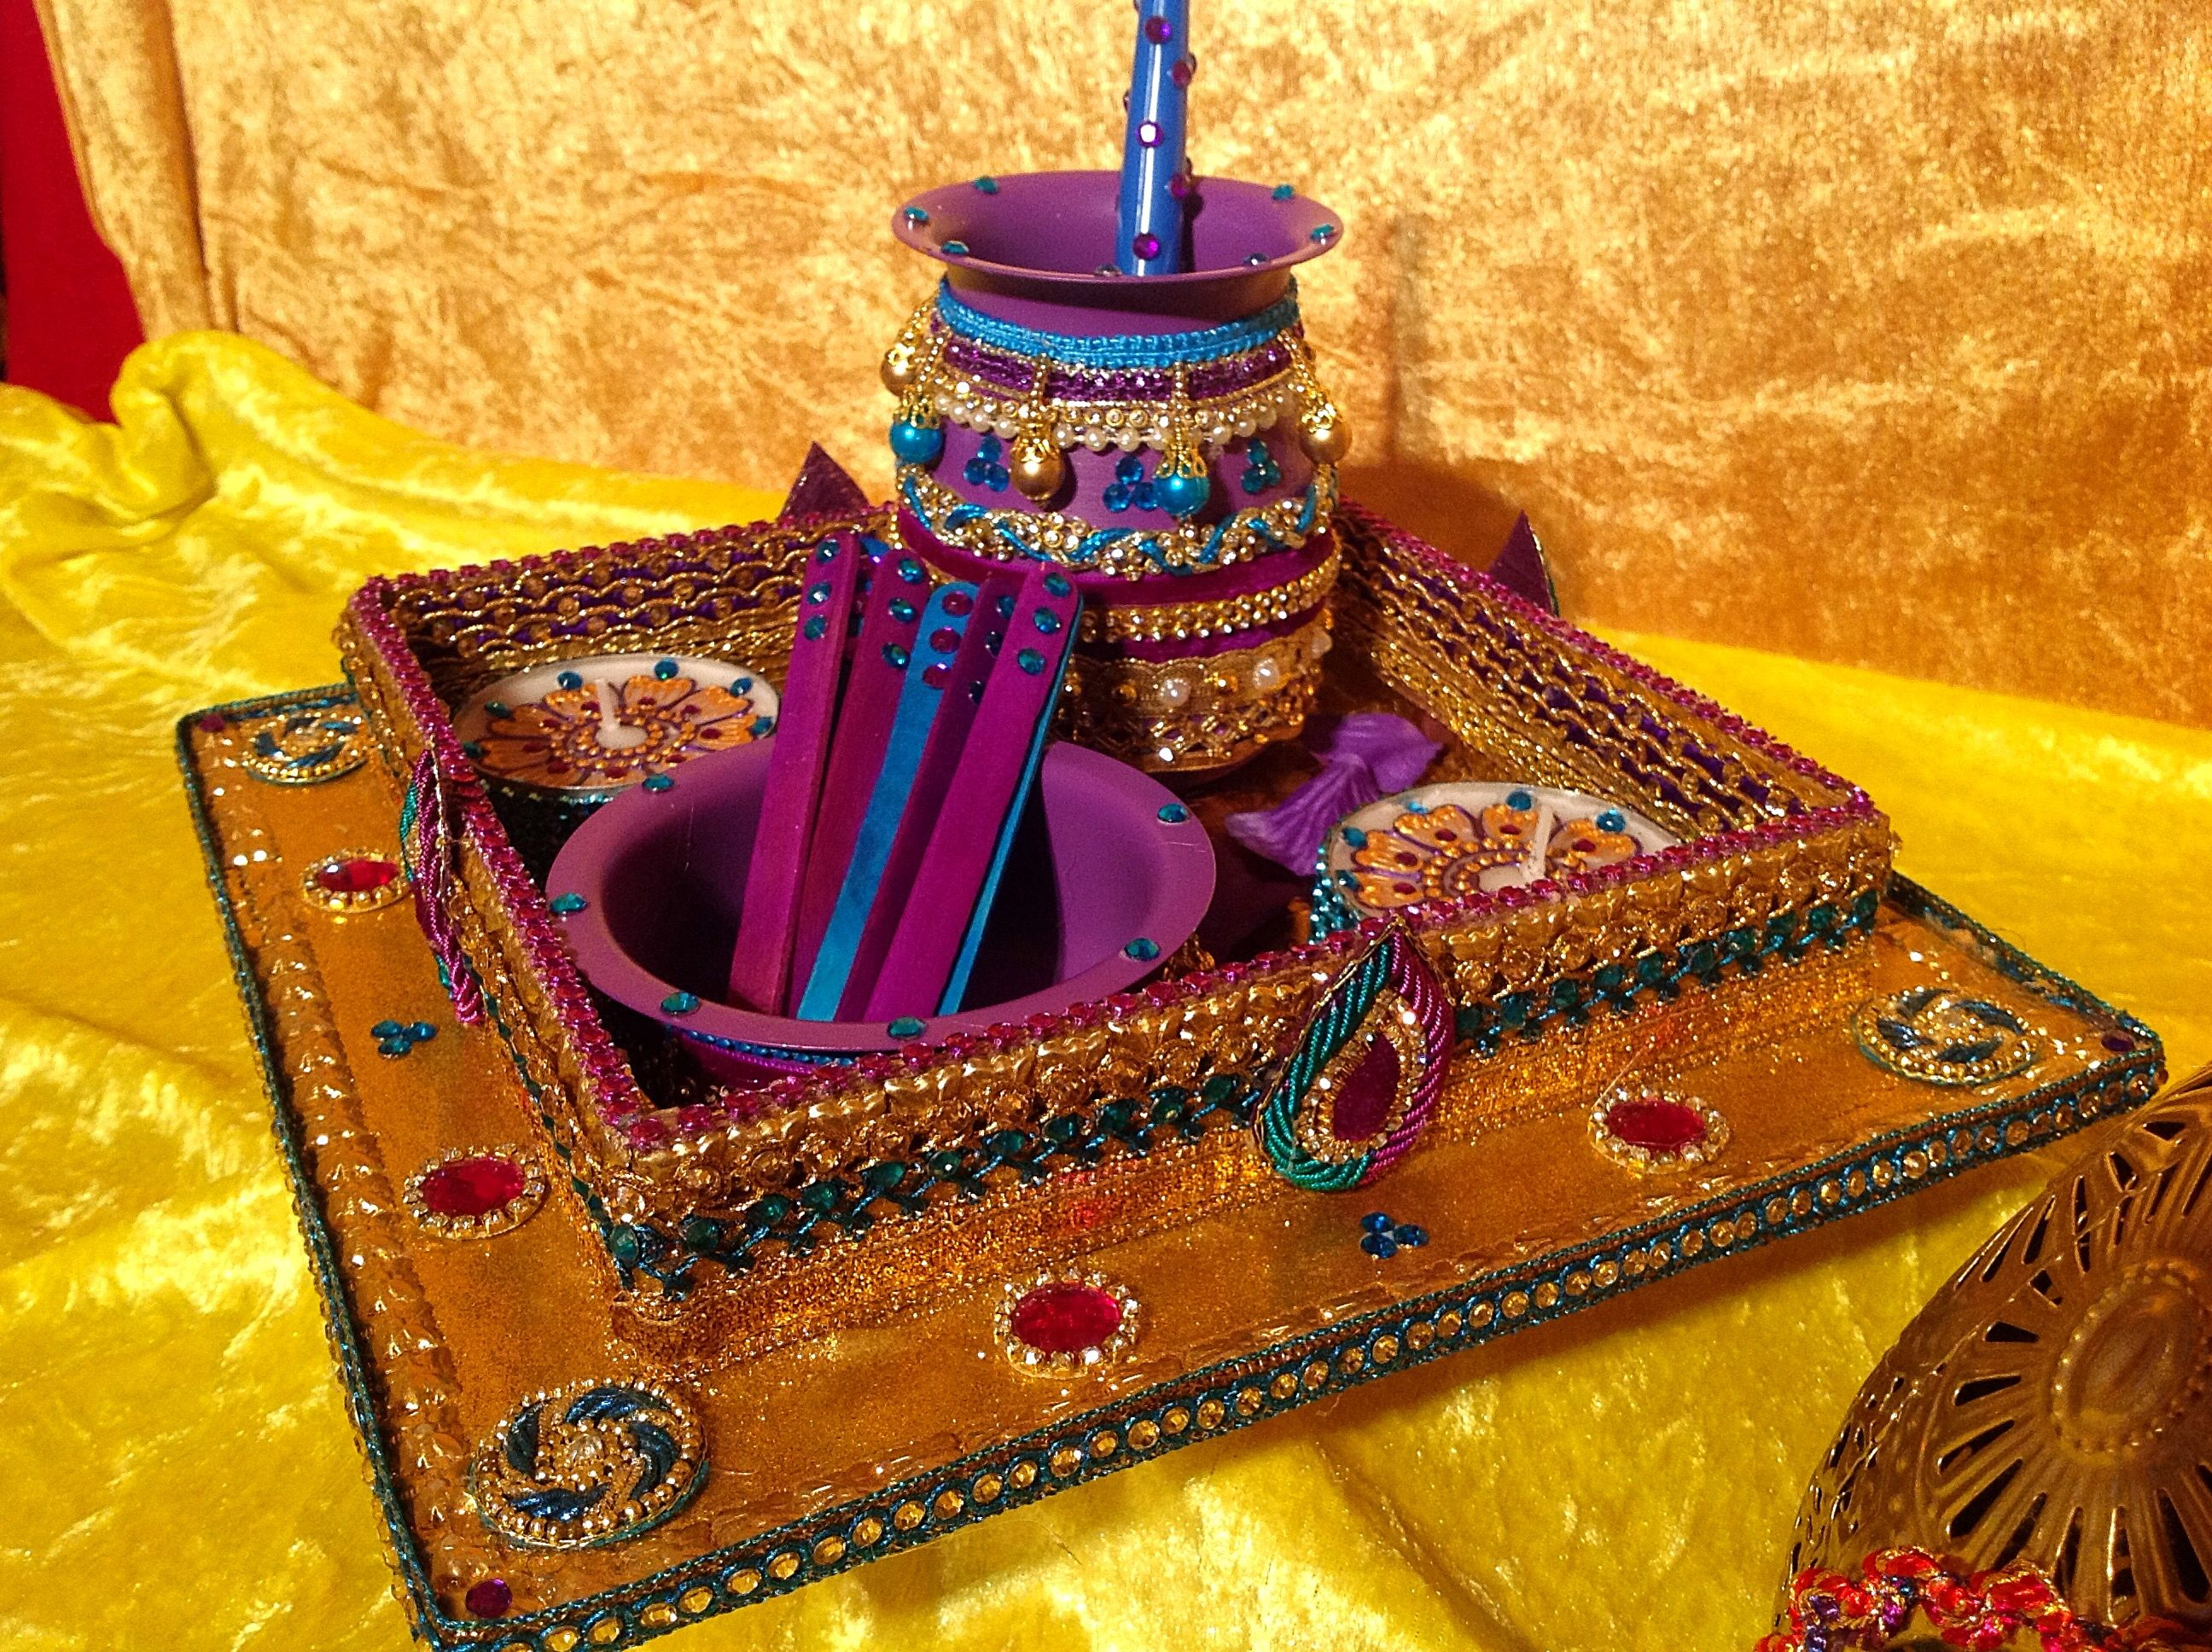 Mehndi Plates Images : A beautiful oil and mehndi tray. see my facebook page www.facebook